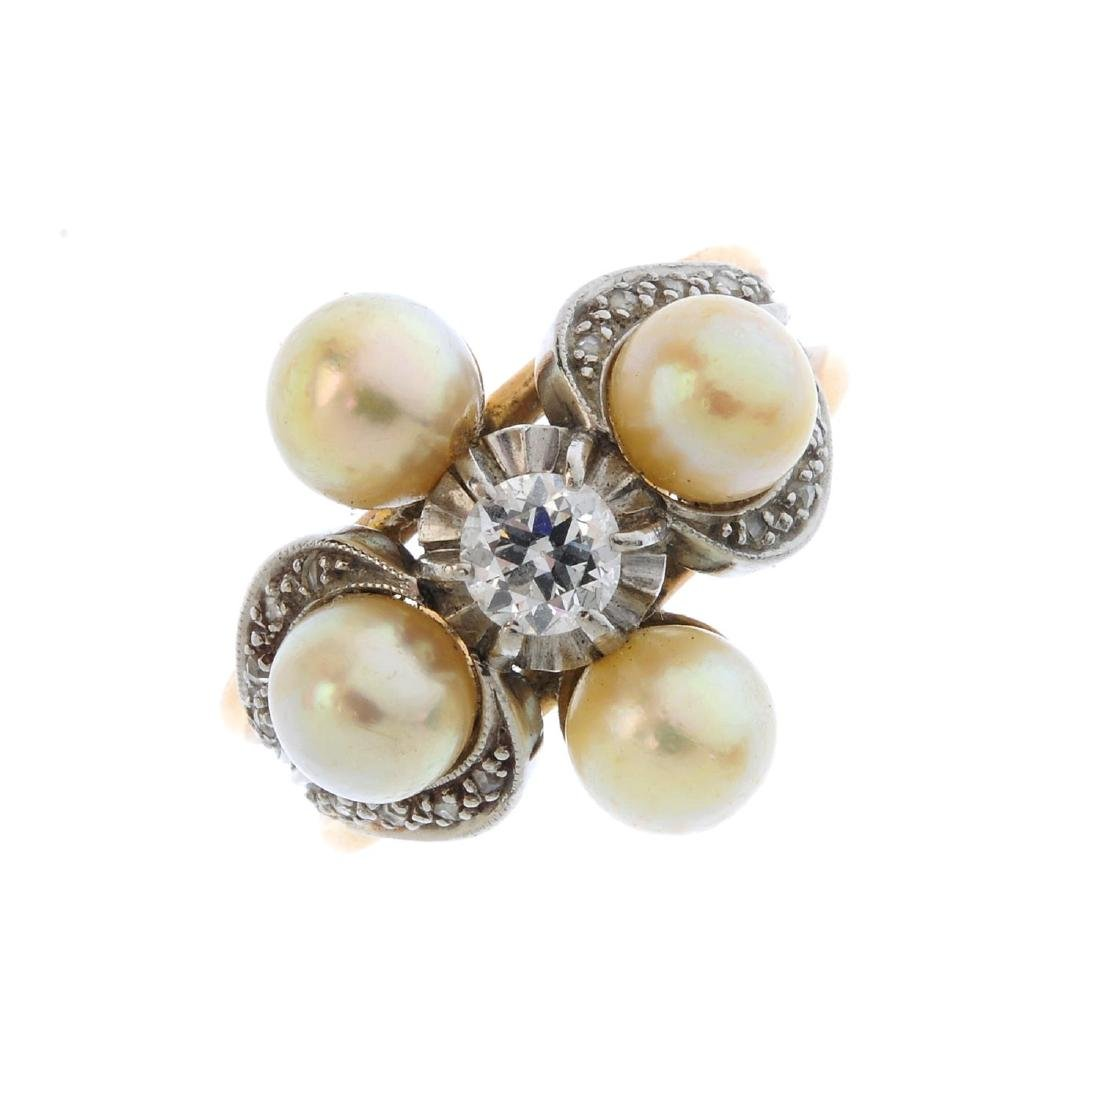 A diamond and cultured pearl dress ring. The old-cut